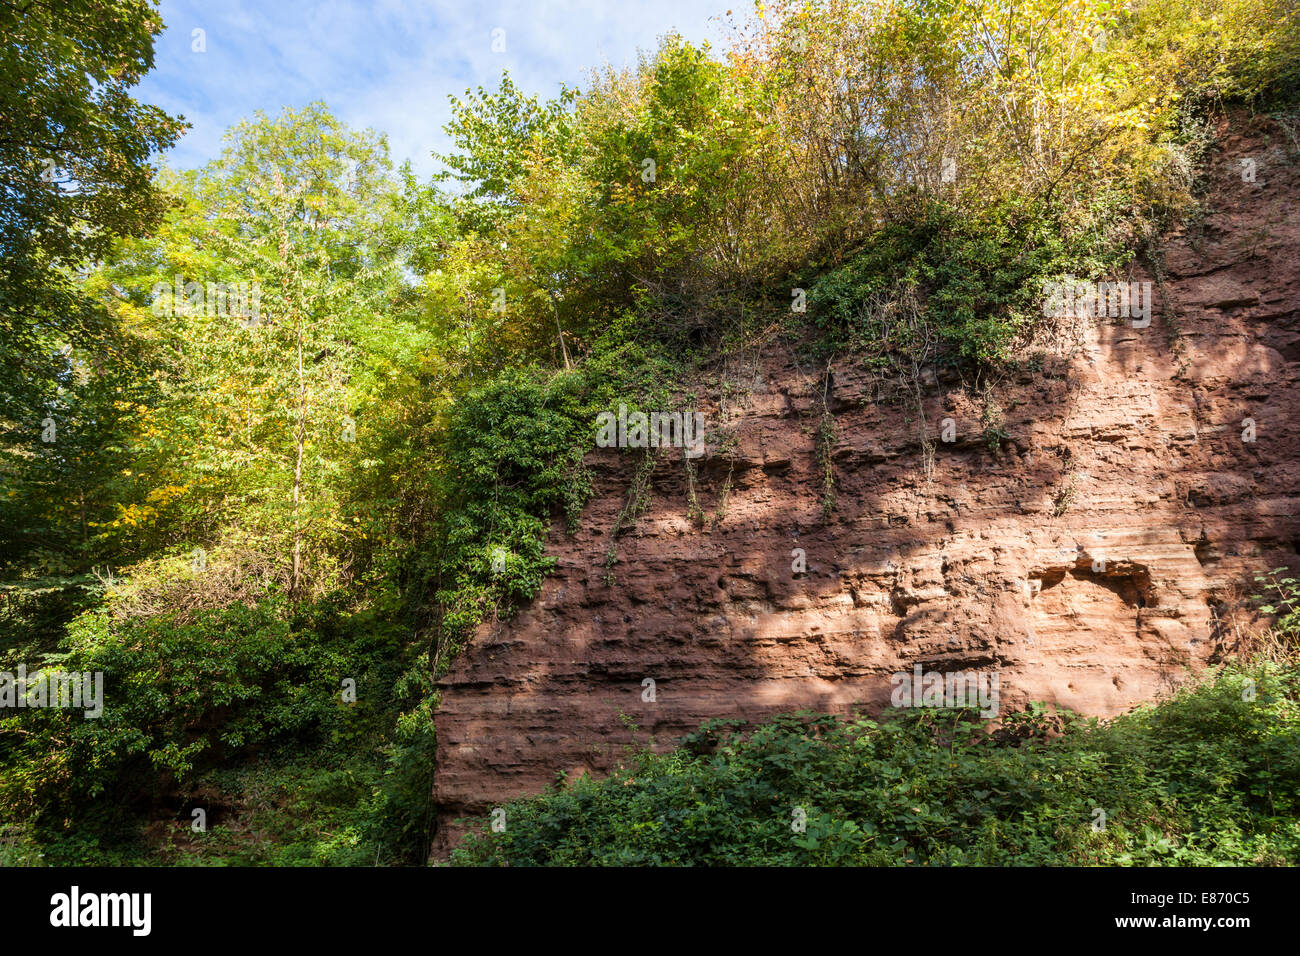 Triassic cliff face of mudstone, siltstone and sandstone at Colwick Cutting, a Site of Special Scientific Interest - Stock Image